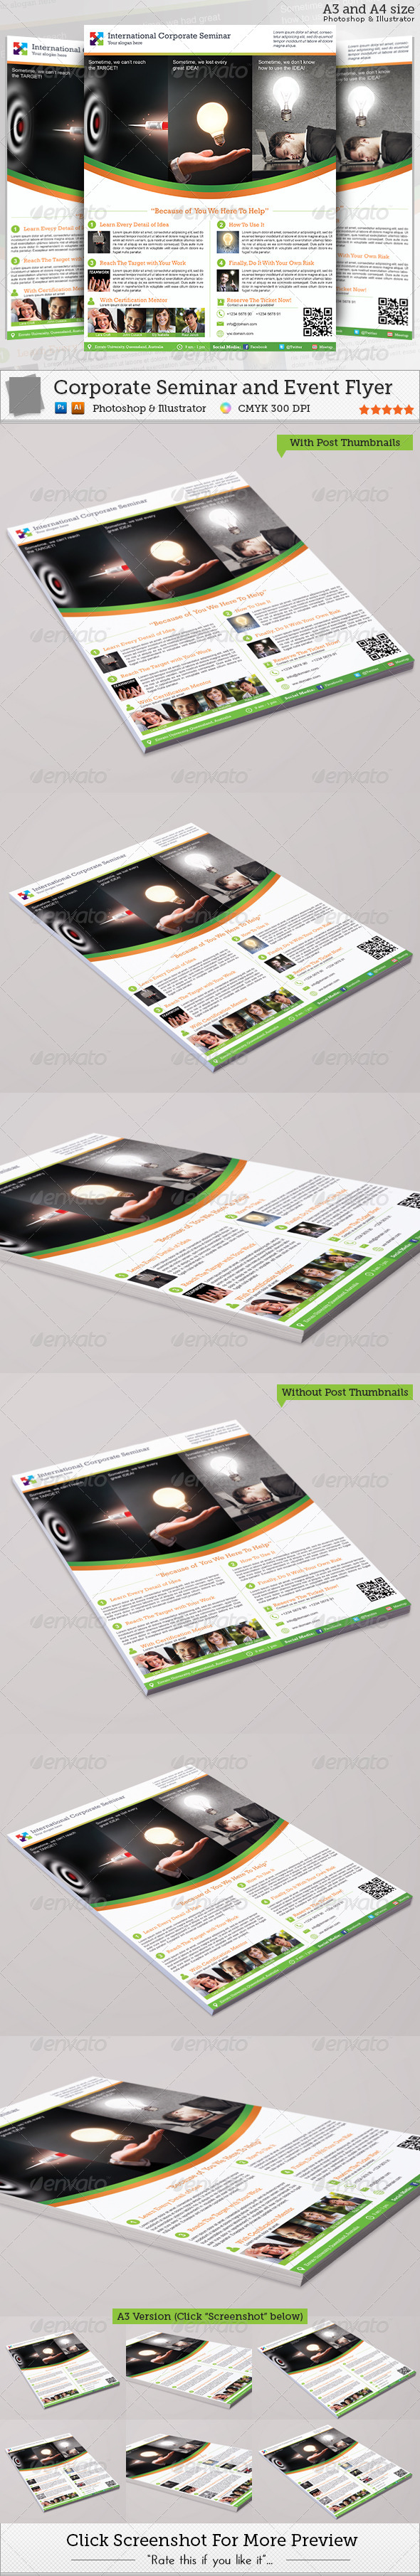 GraphicRiver Corporate Seminar and Event Flyer 4515425